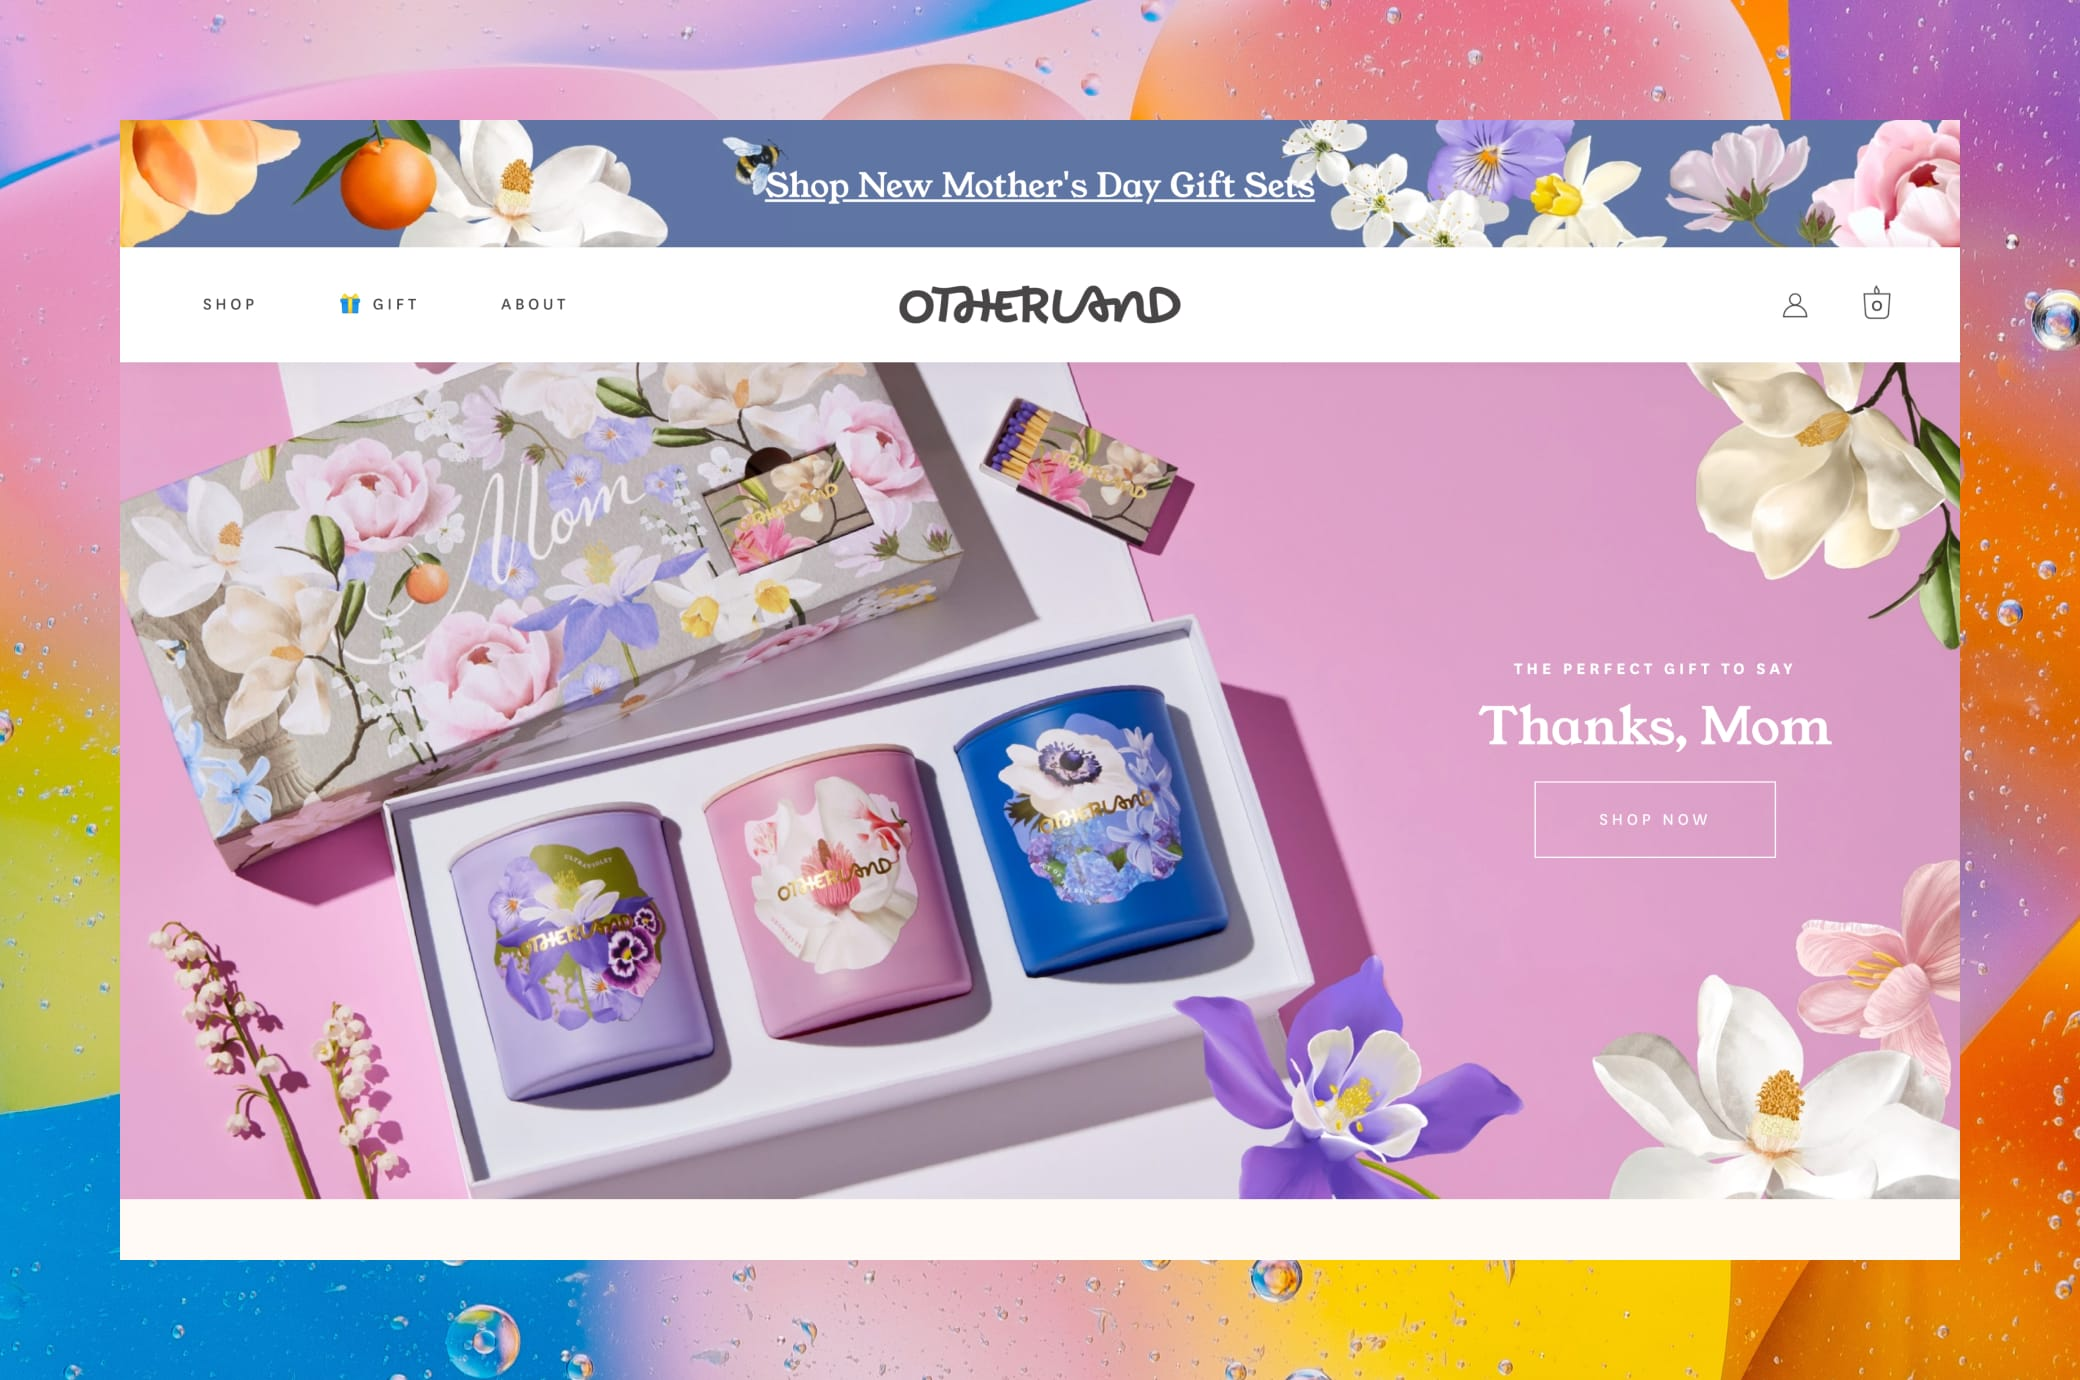 otherland.com home screen in browser window on colorful background